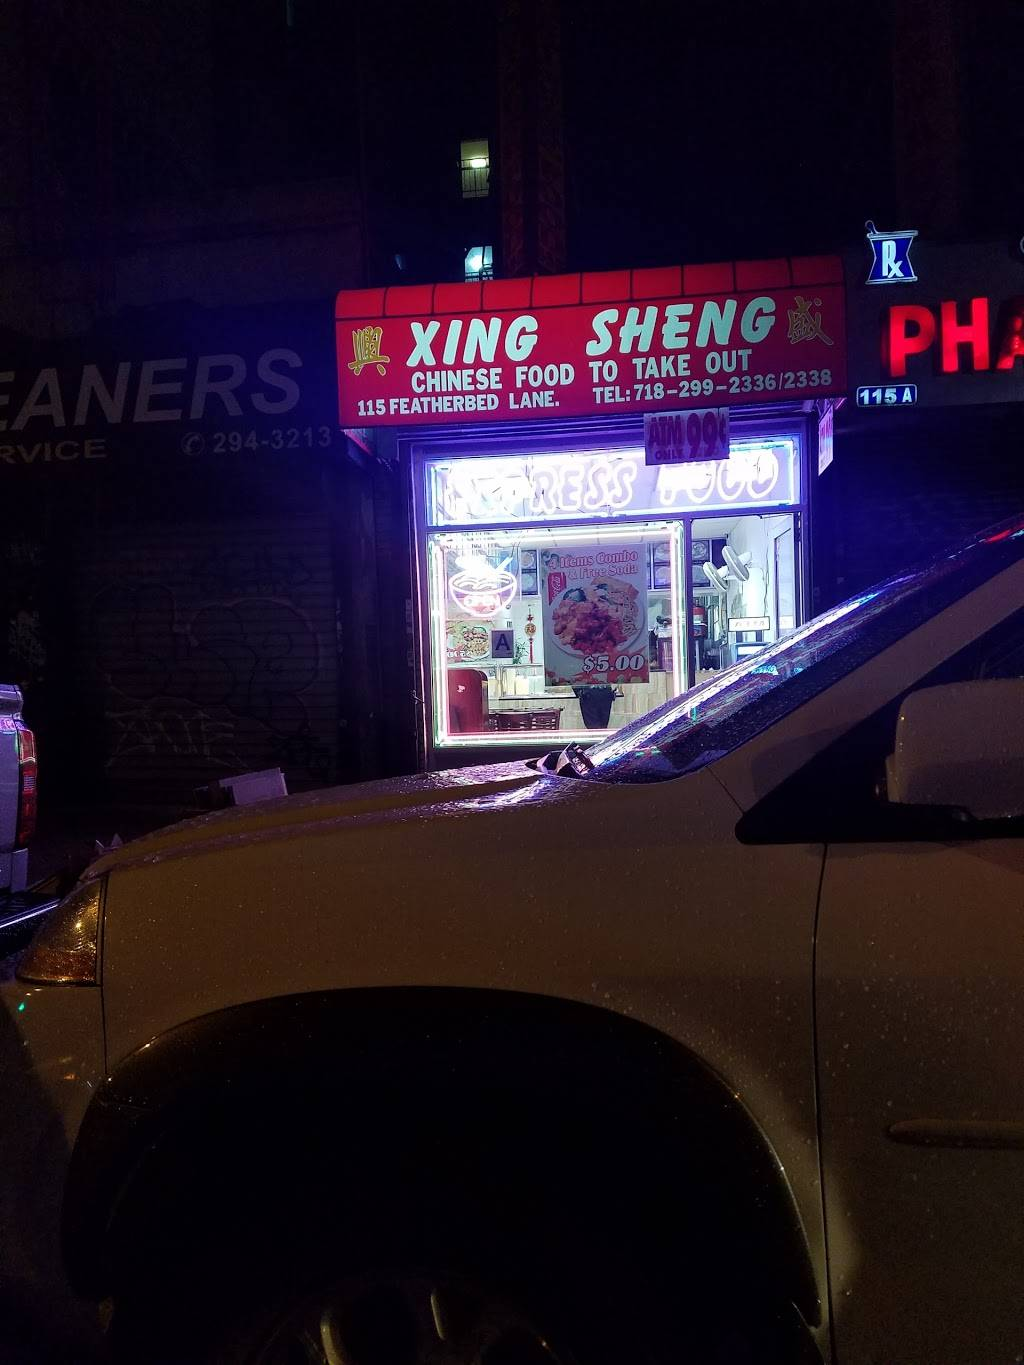 Xing Sheng - Jackie Chans Chinese Restaurant | restaurant | 115 Featherbed Ln, Bronx, NY 10452, USA | 7182992338 OR +1 718-299-2338